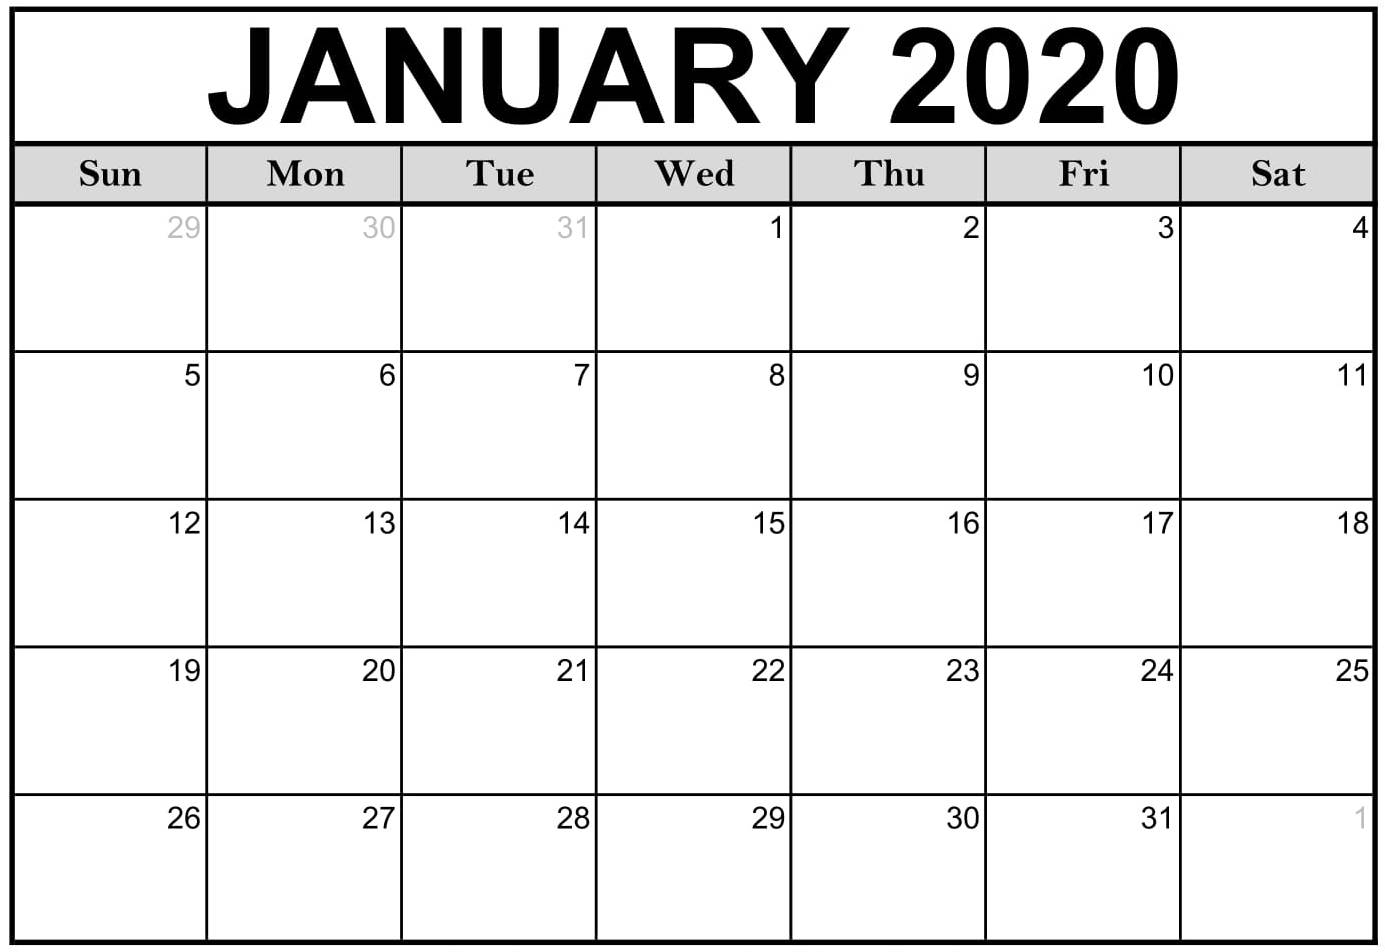 Free Printable January 2020 Calendar Editable Datesheets in Printable Fillable 2020 Calandars Monthly At A Glance